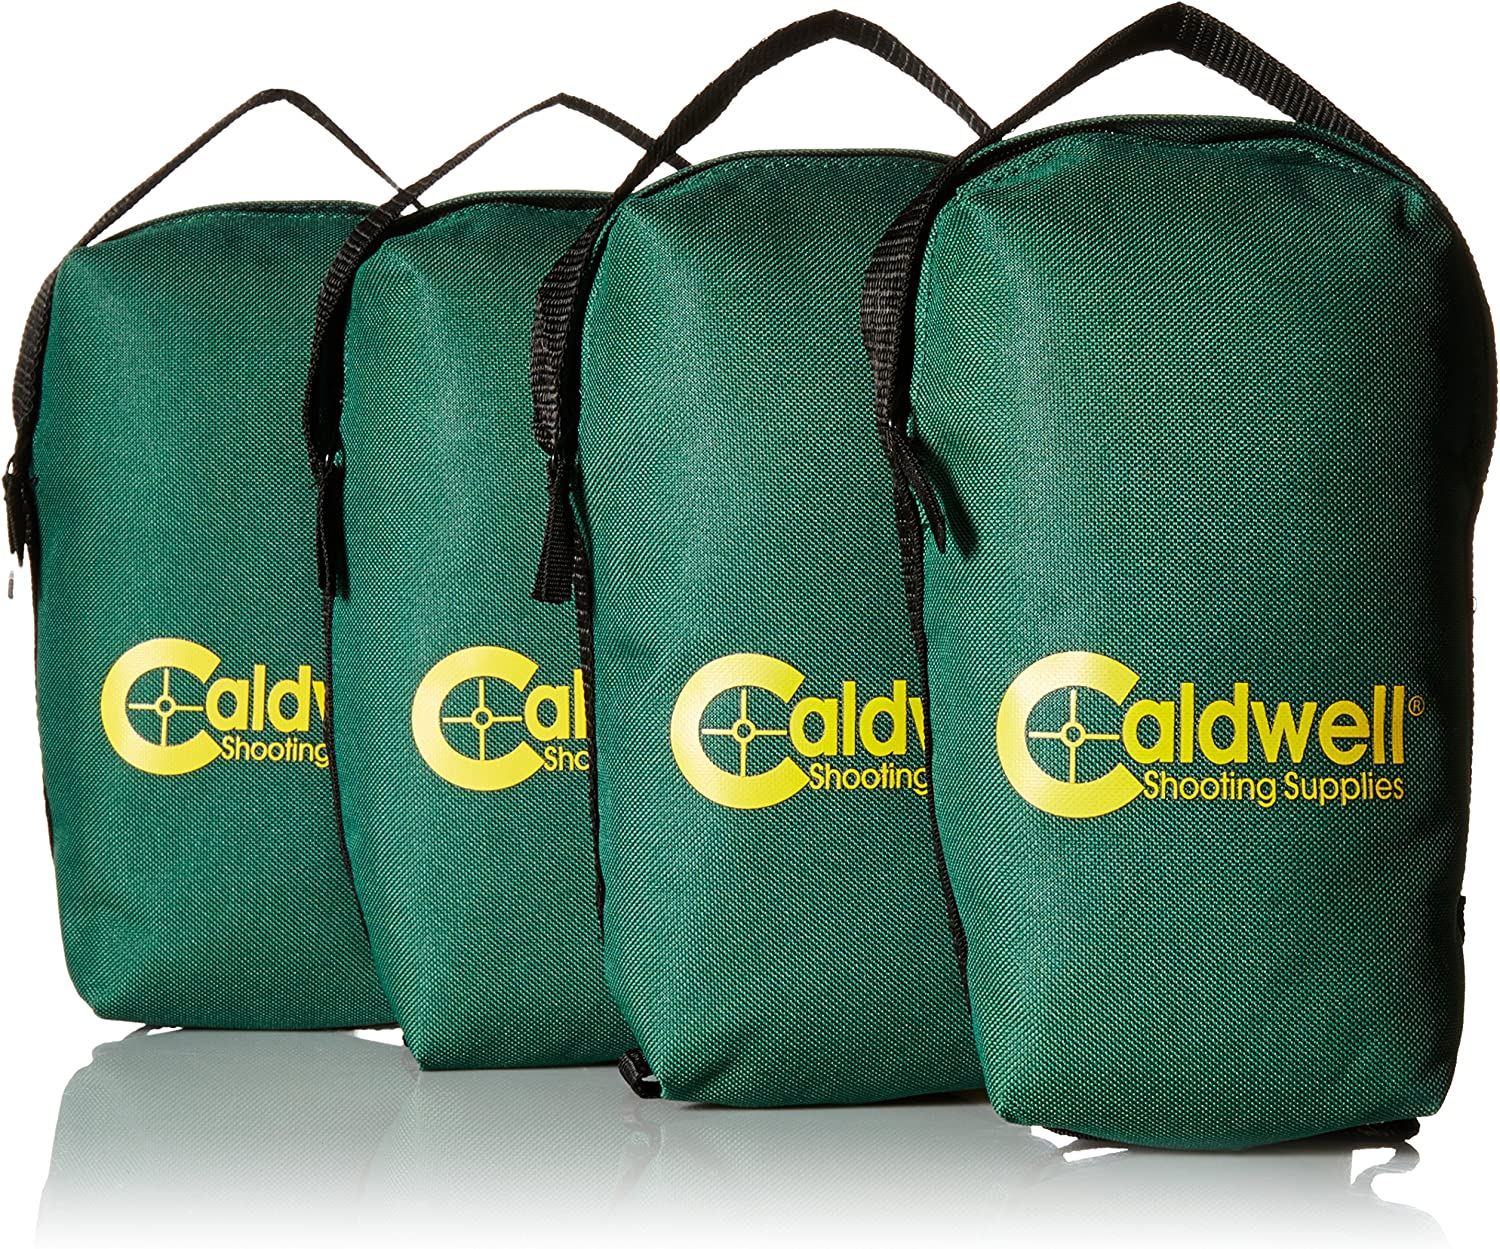 Caldwell Time sale Lead Sled Weight Bag 2021 Construction Wate and with Durable